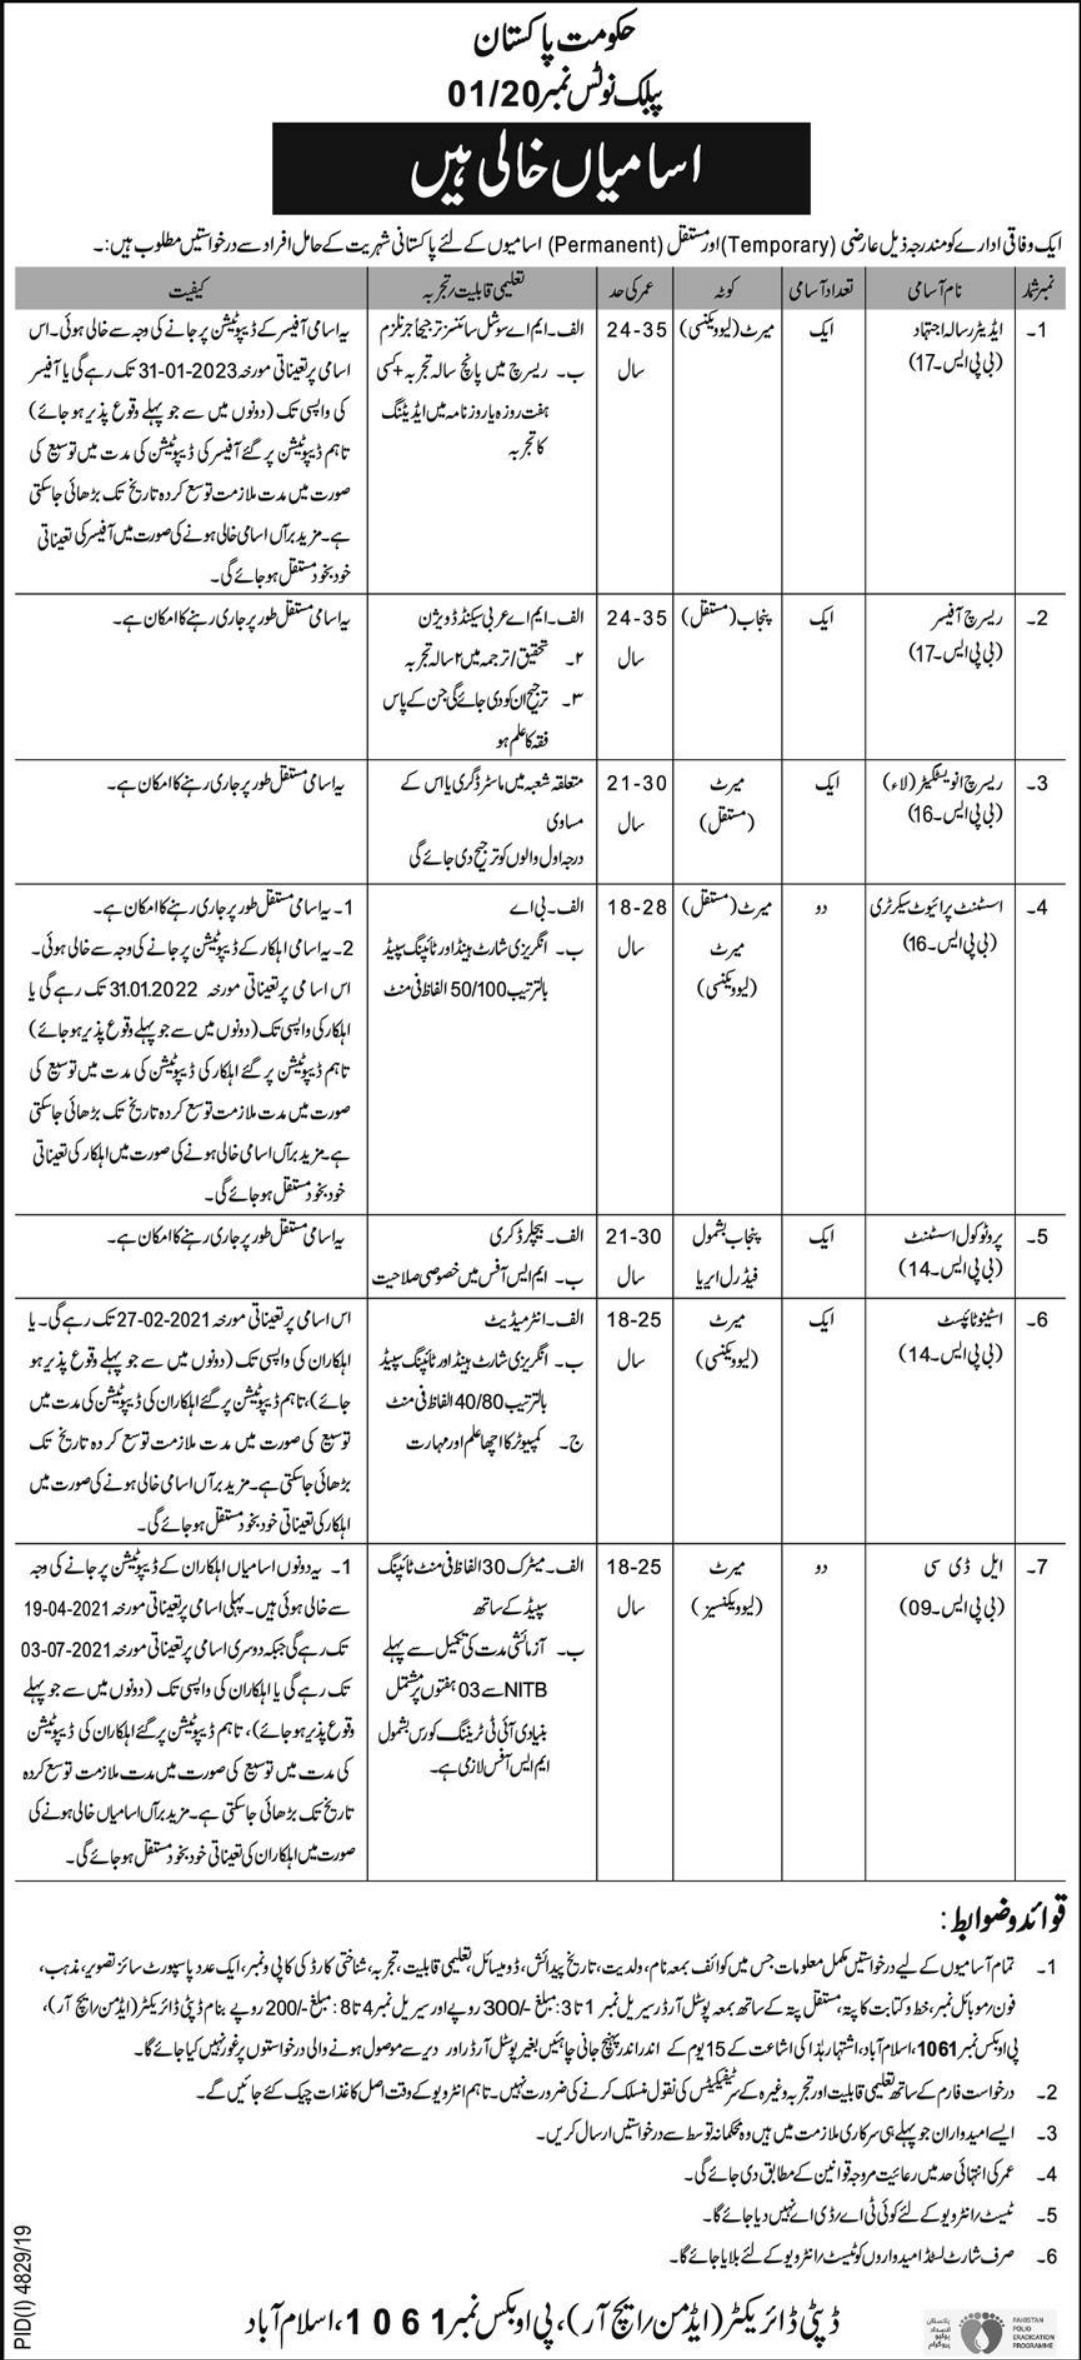 Federal Government Organization Jobs 2020 P.O.Box 1061 Islamabad